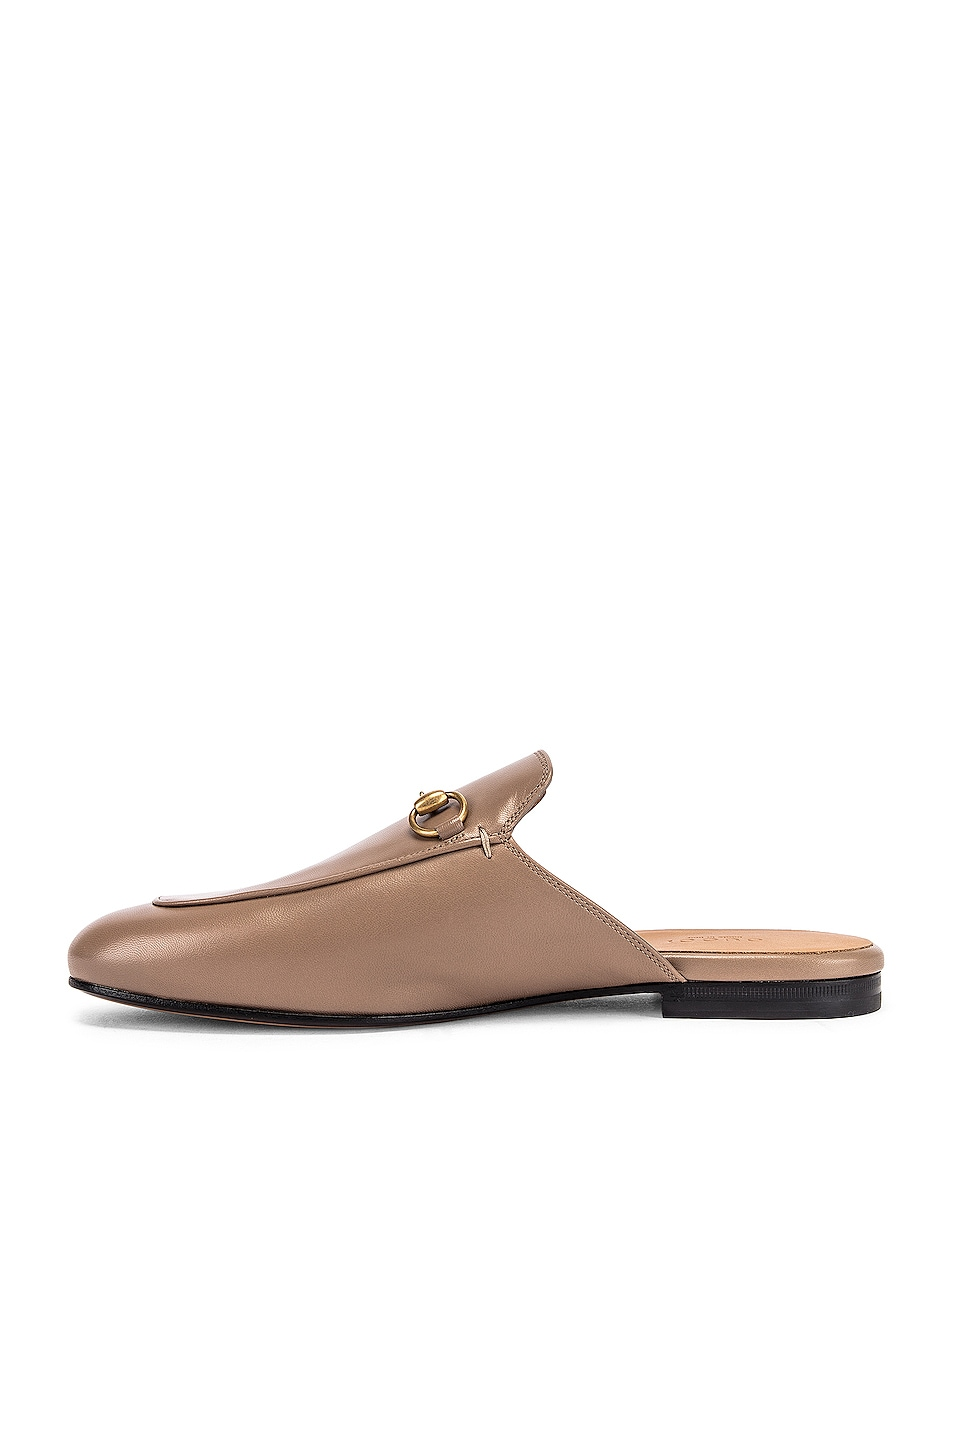 Image 5 of Gucci Princetown Slides in Mud